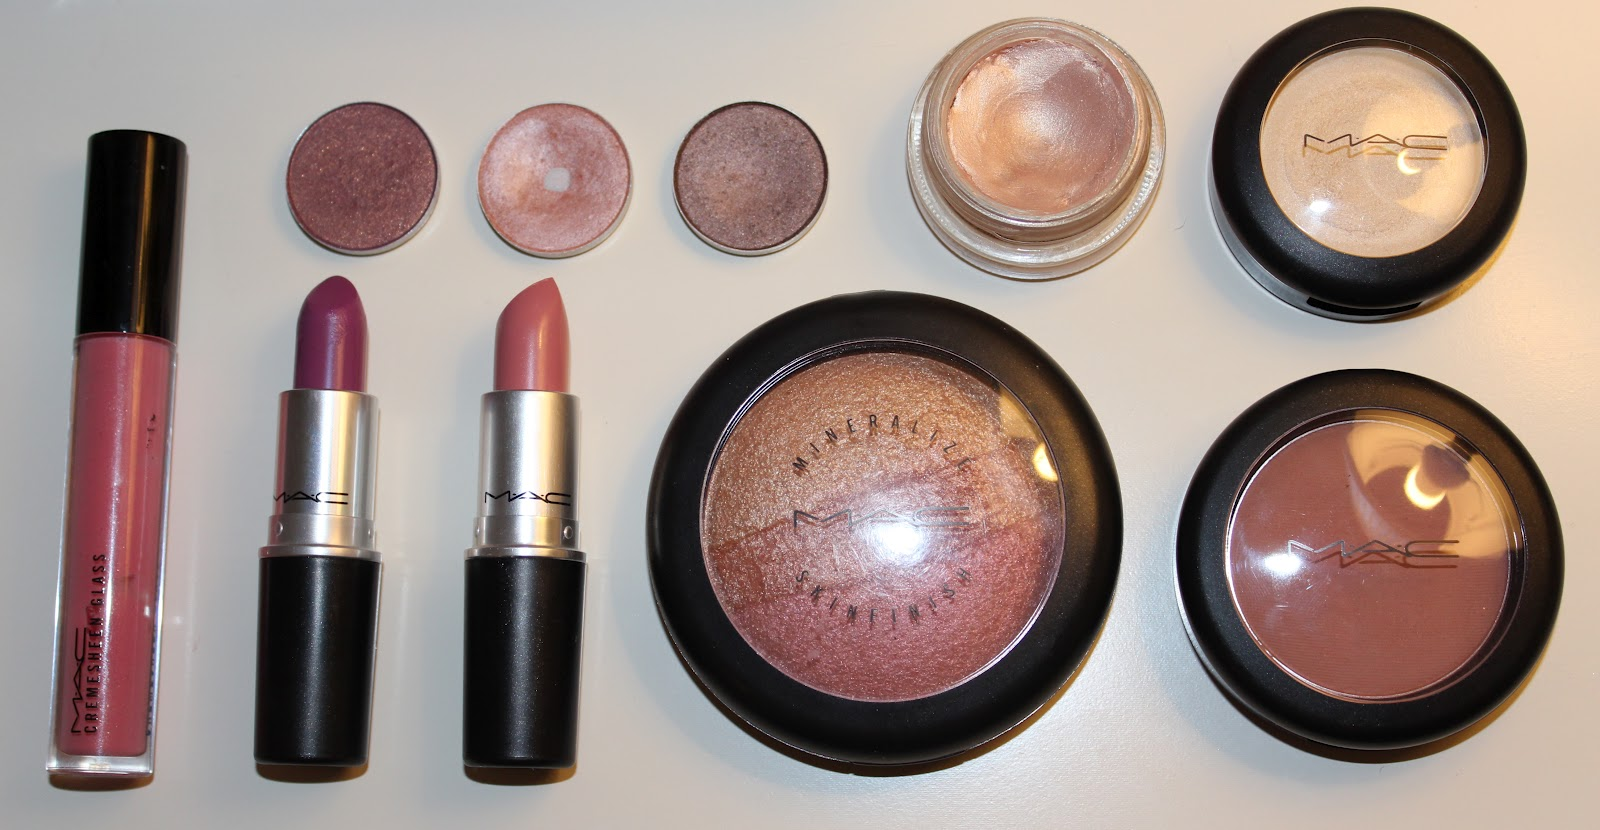 Bedwelming My Top 10 Mac Products ♥ - The Ash Edit @XQ72